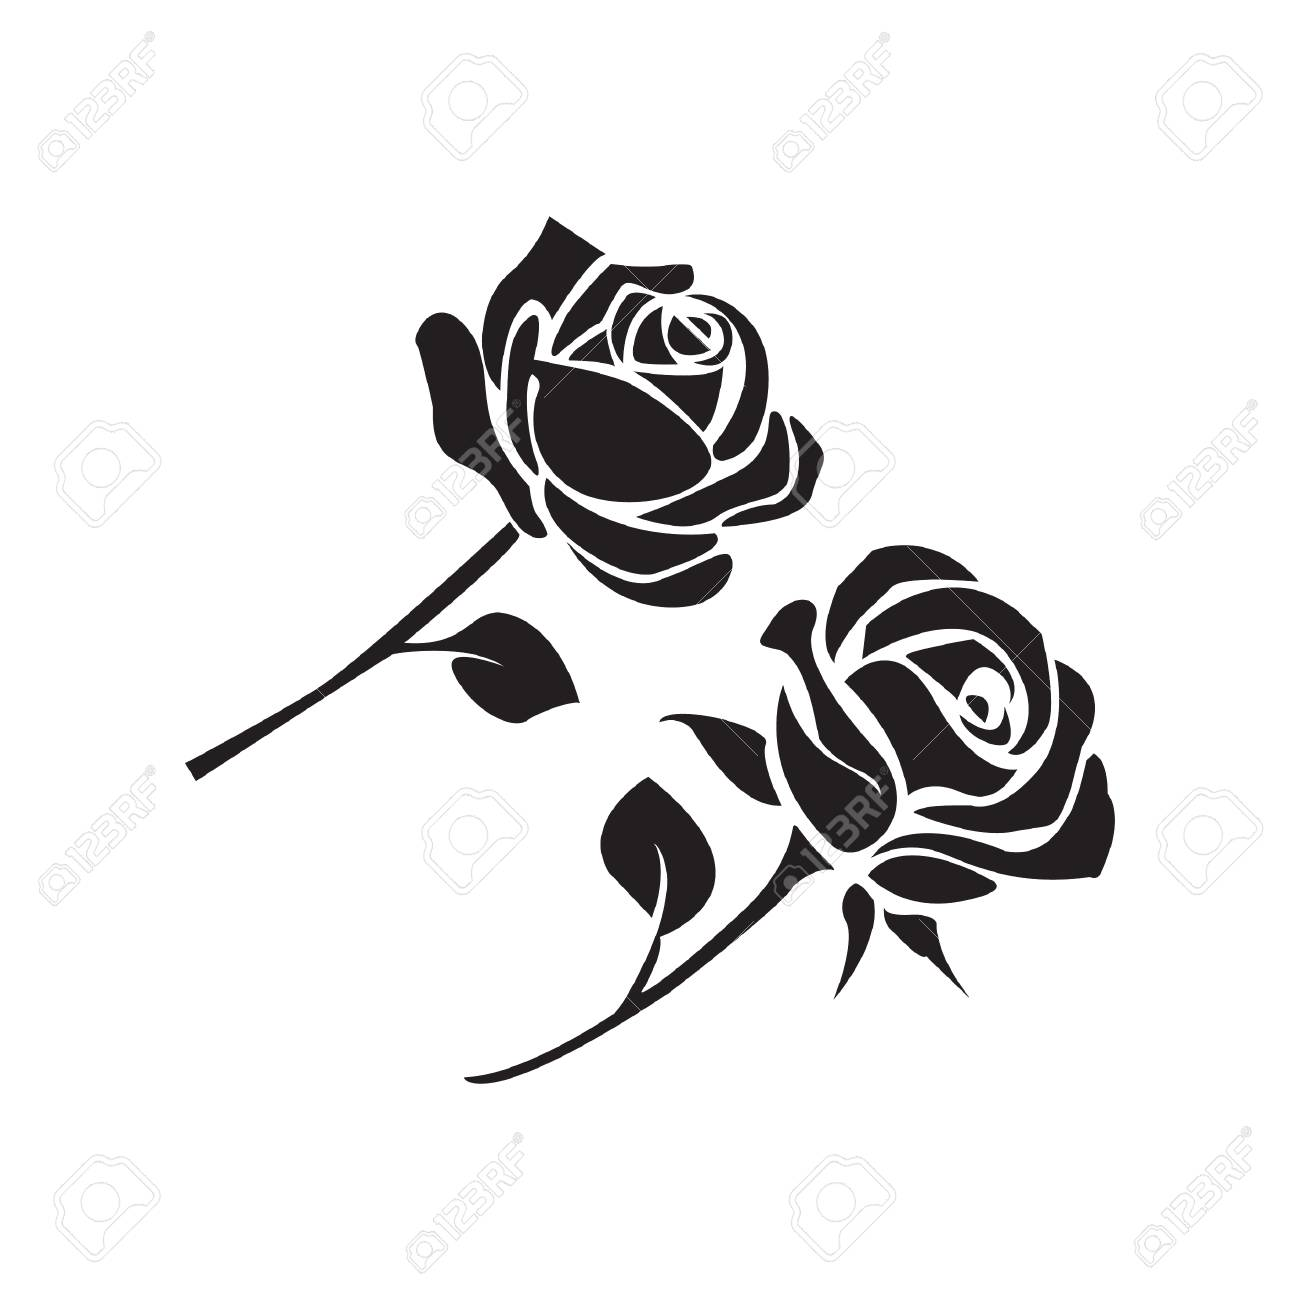 rose silhouette vector at getdrawings com free for personal use rh getdrawings com rose vector art free rose vectorielle